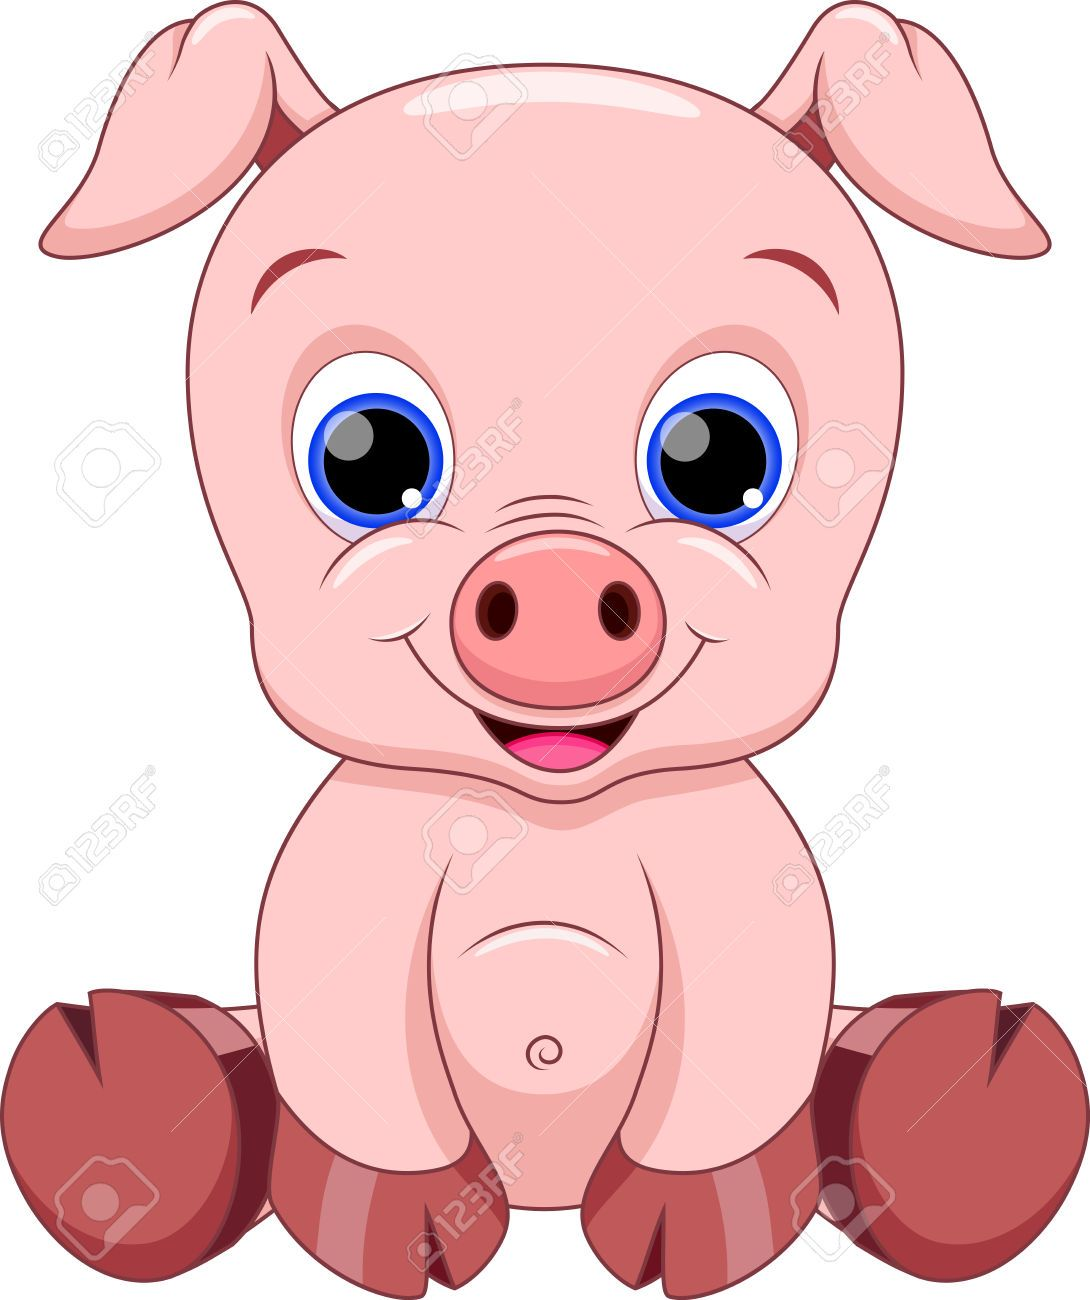 Cute baby cartoon royalty. 5 clipart pig